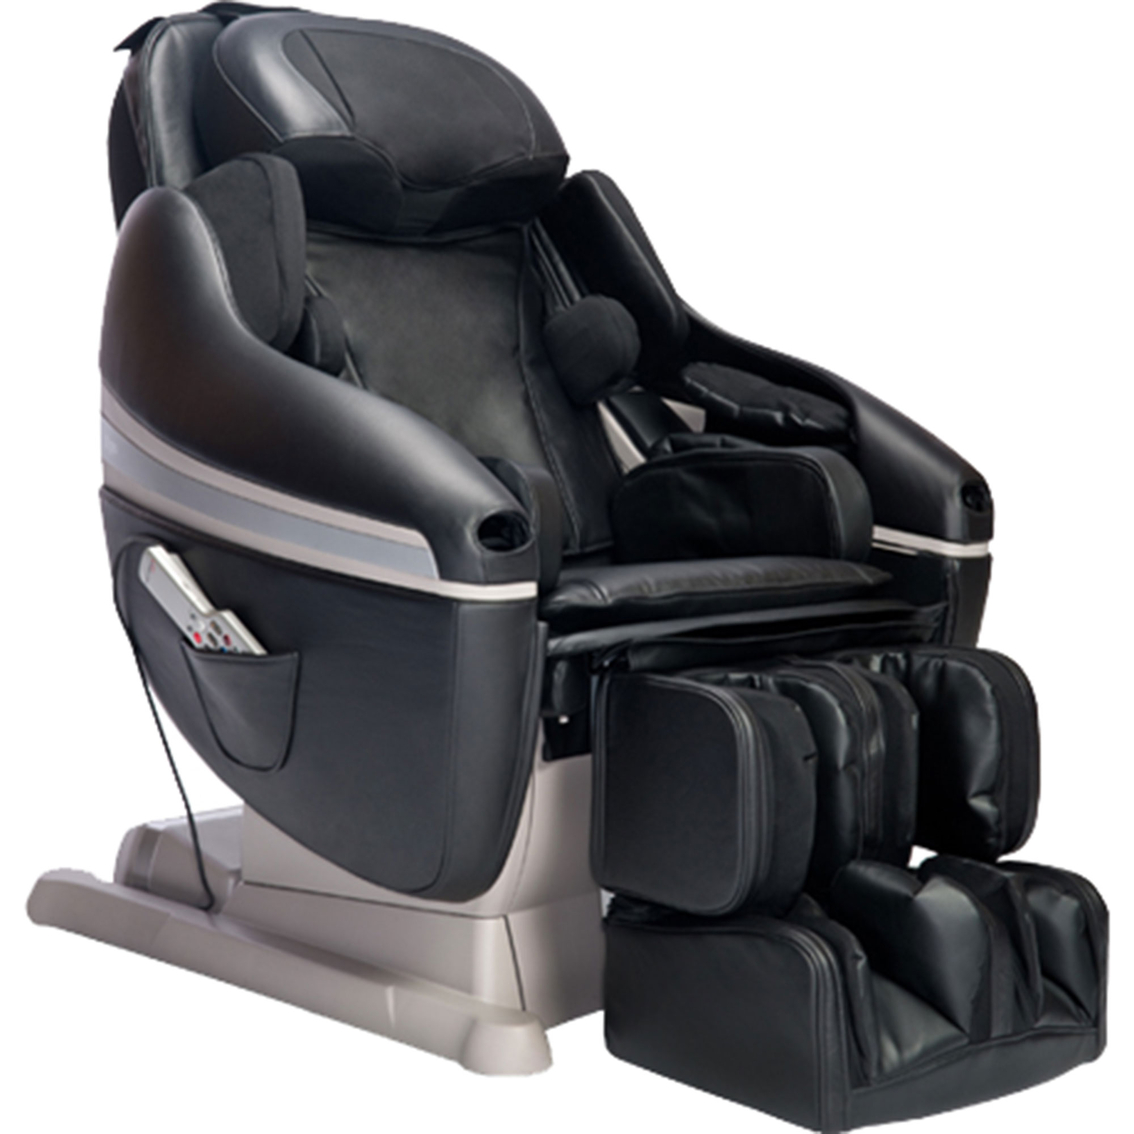 Inada Dreamwave Massage Chair Inada Sogno Dreamwave Massage Chair Black Chairs